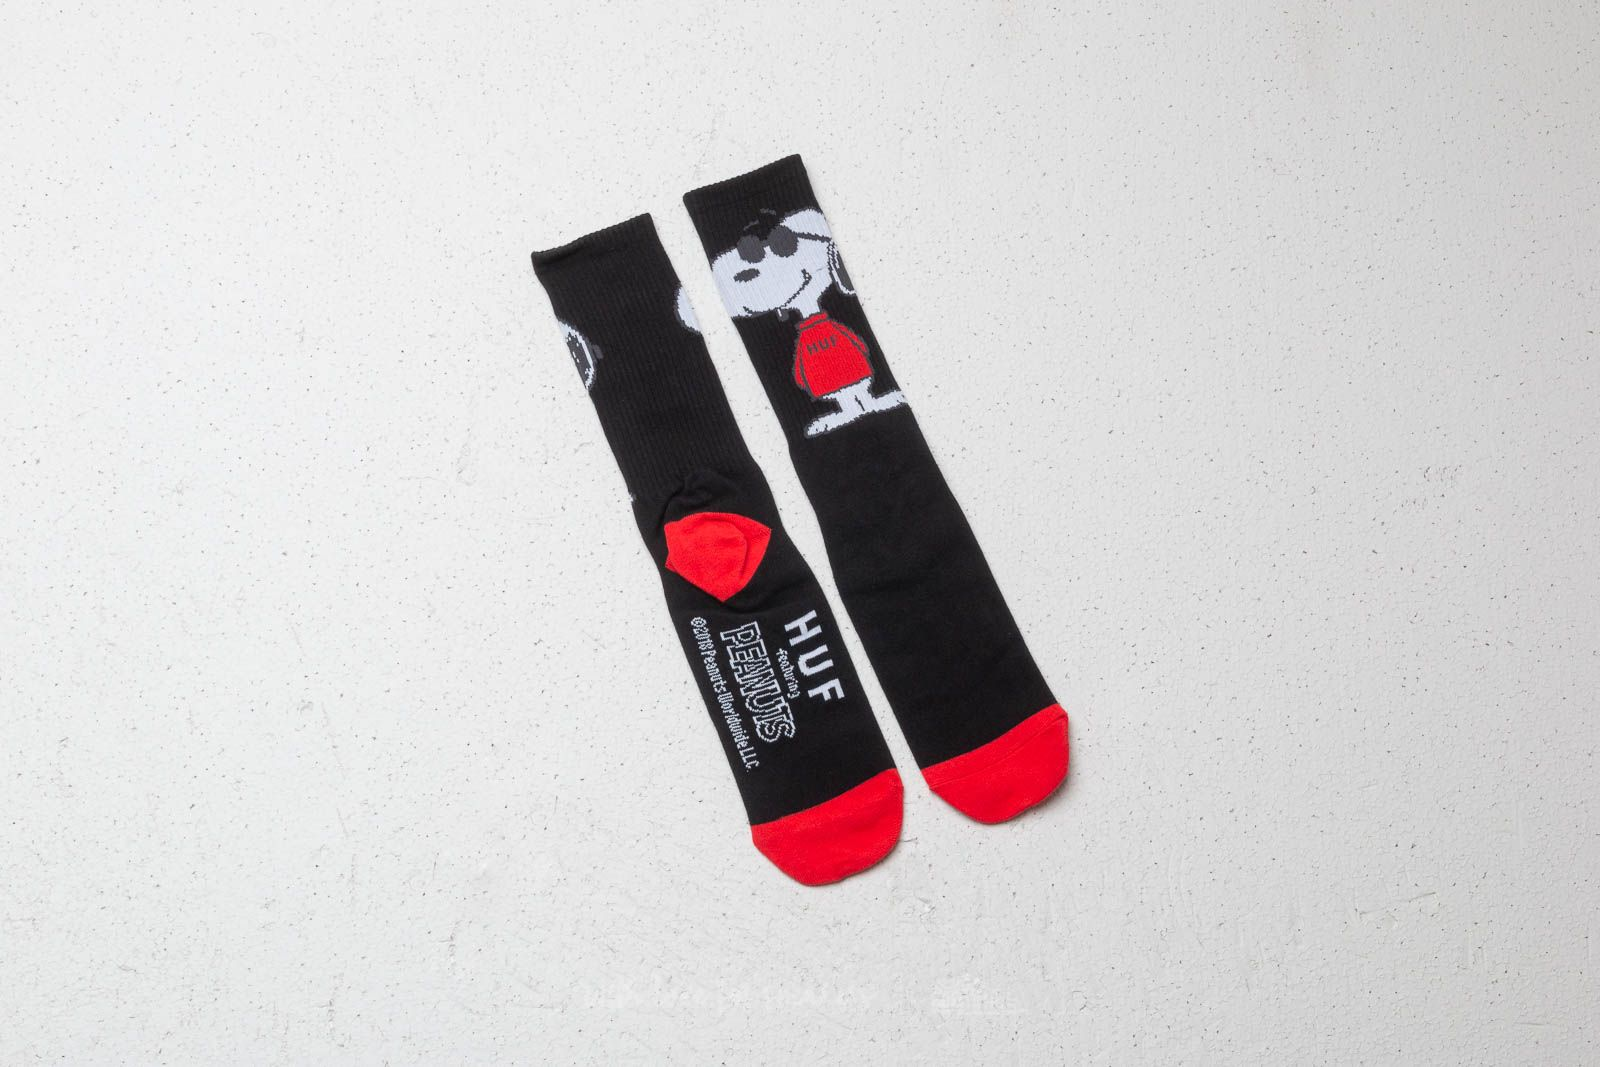 HUF x Peanuts Joe Cool Crew Socks